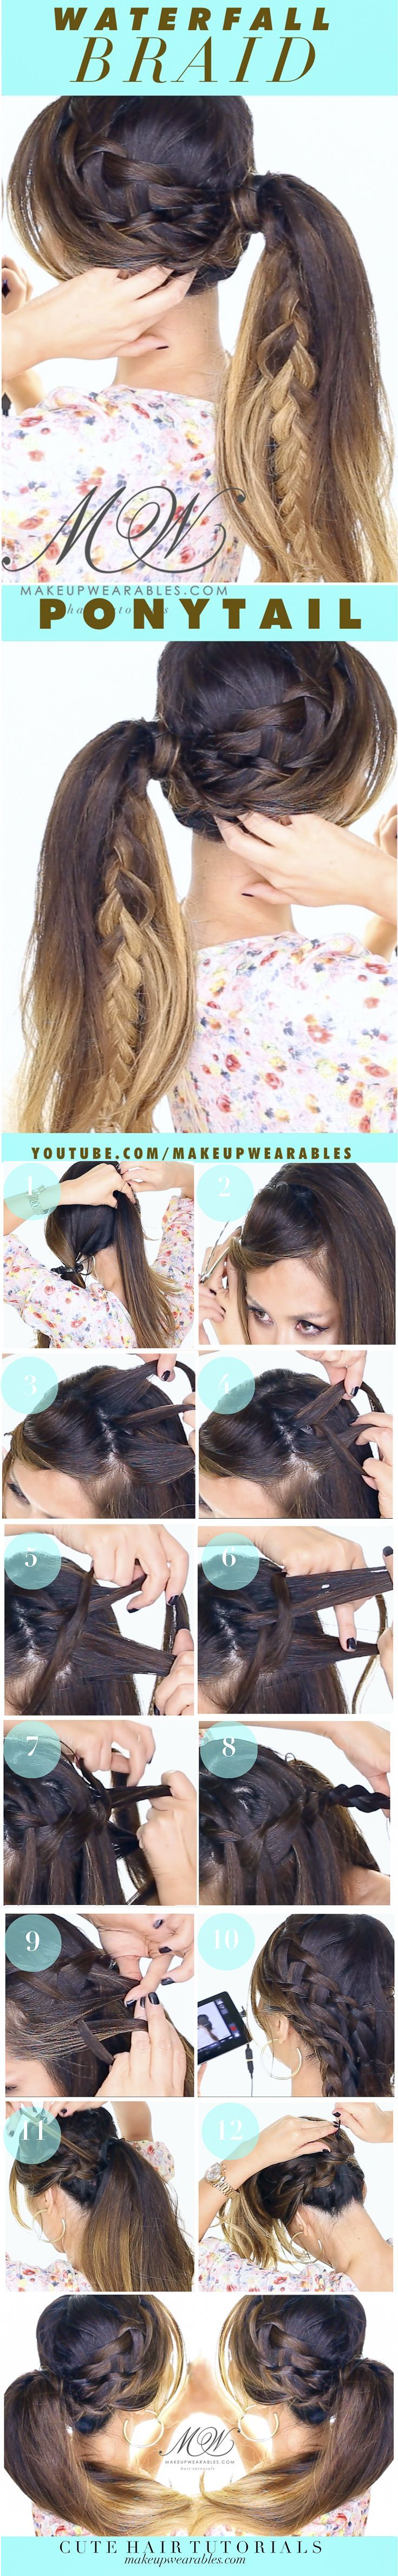 Check out this fun waterfall braid tutorial healthbeauty how to do an easy waterfall braid ponytail or bun hairstyle on yourself best for long and medium hair a quick romantic everyday hairdo solutioingenieria Images